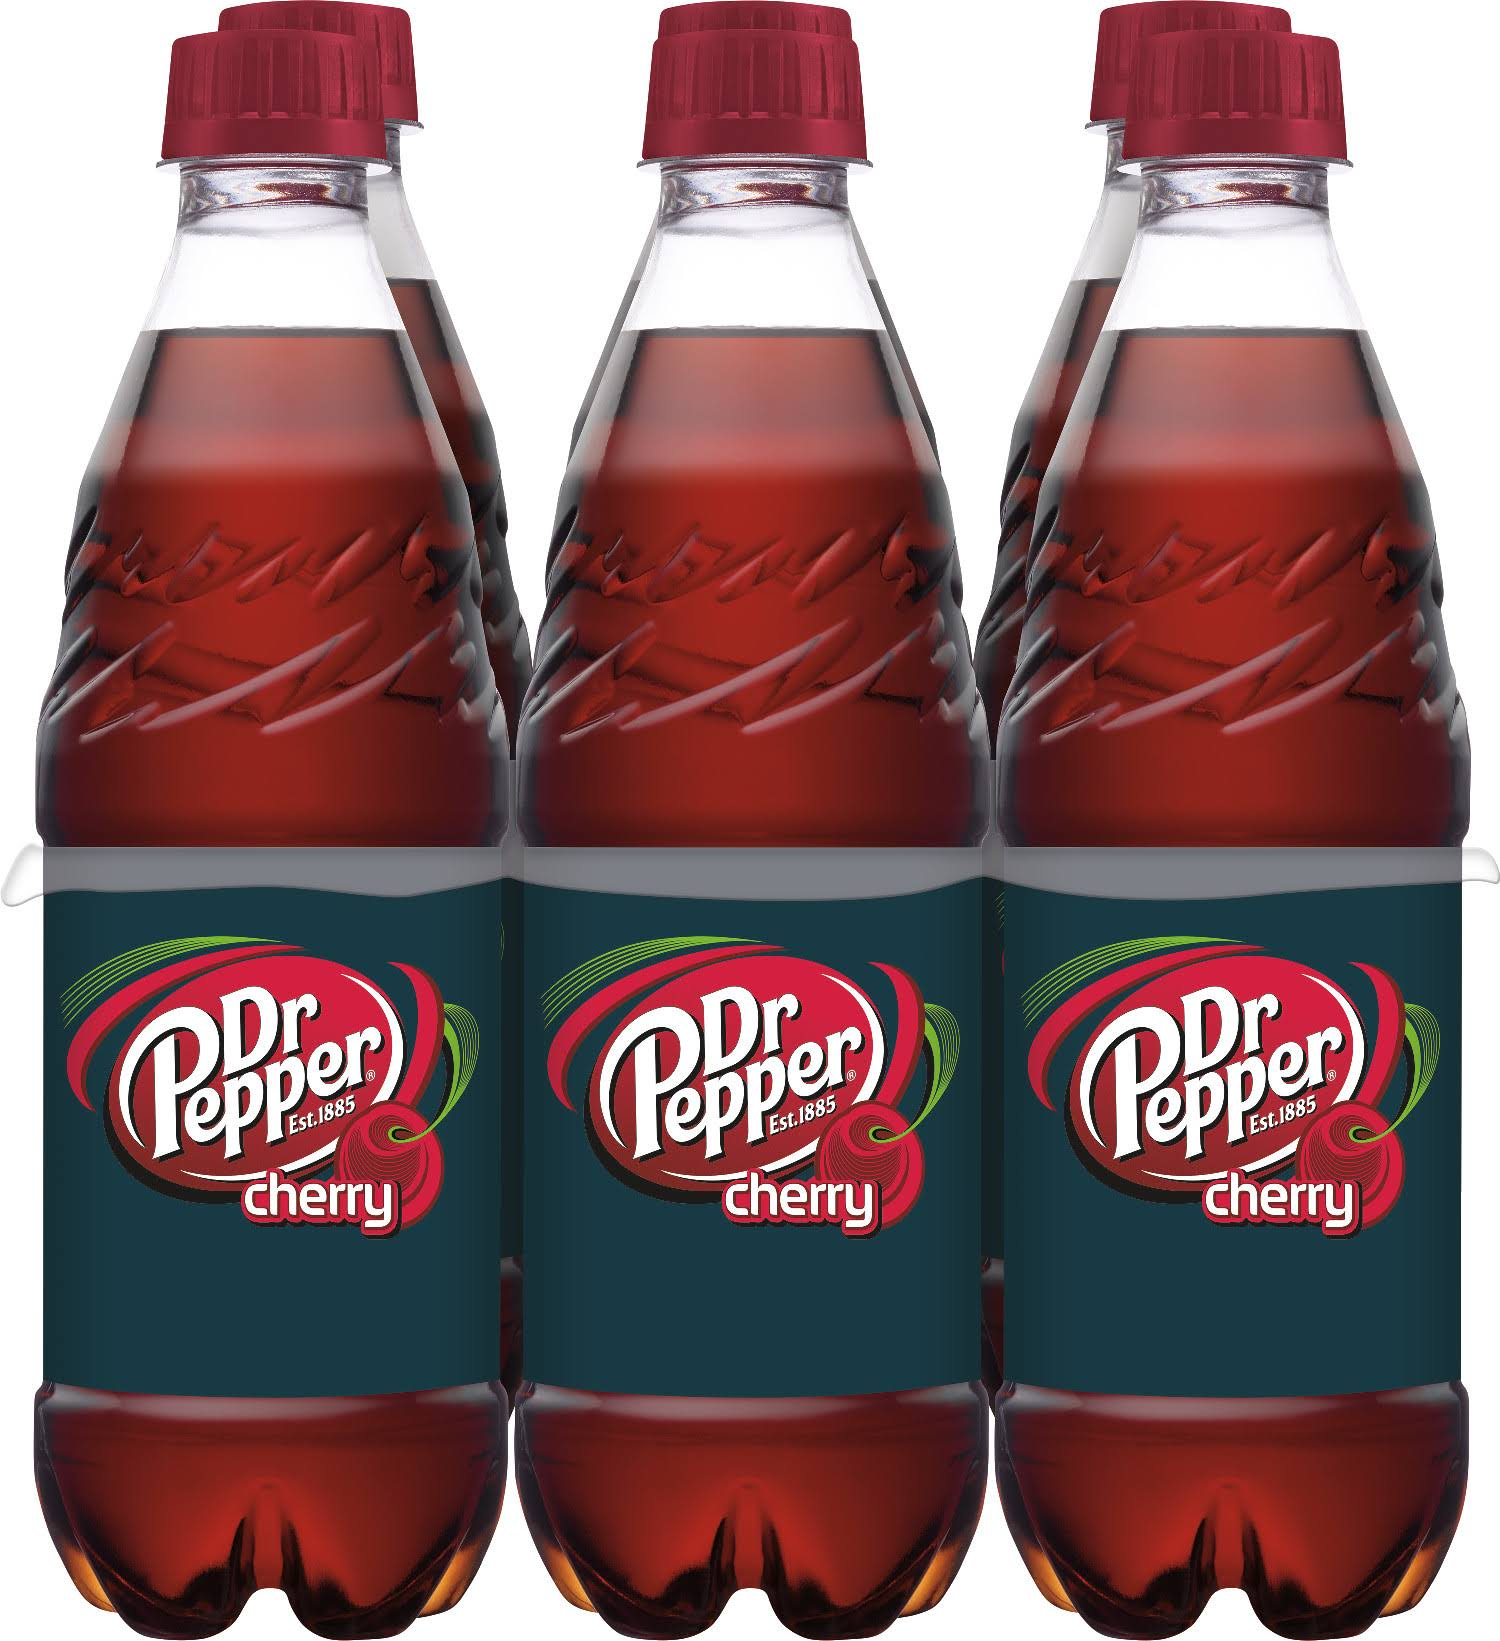 Dr Pepper Cherry Soda - 6 pack, 16.9 fl oz bottles